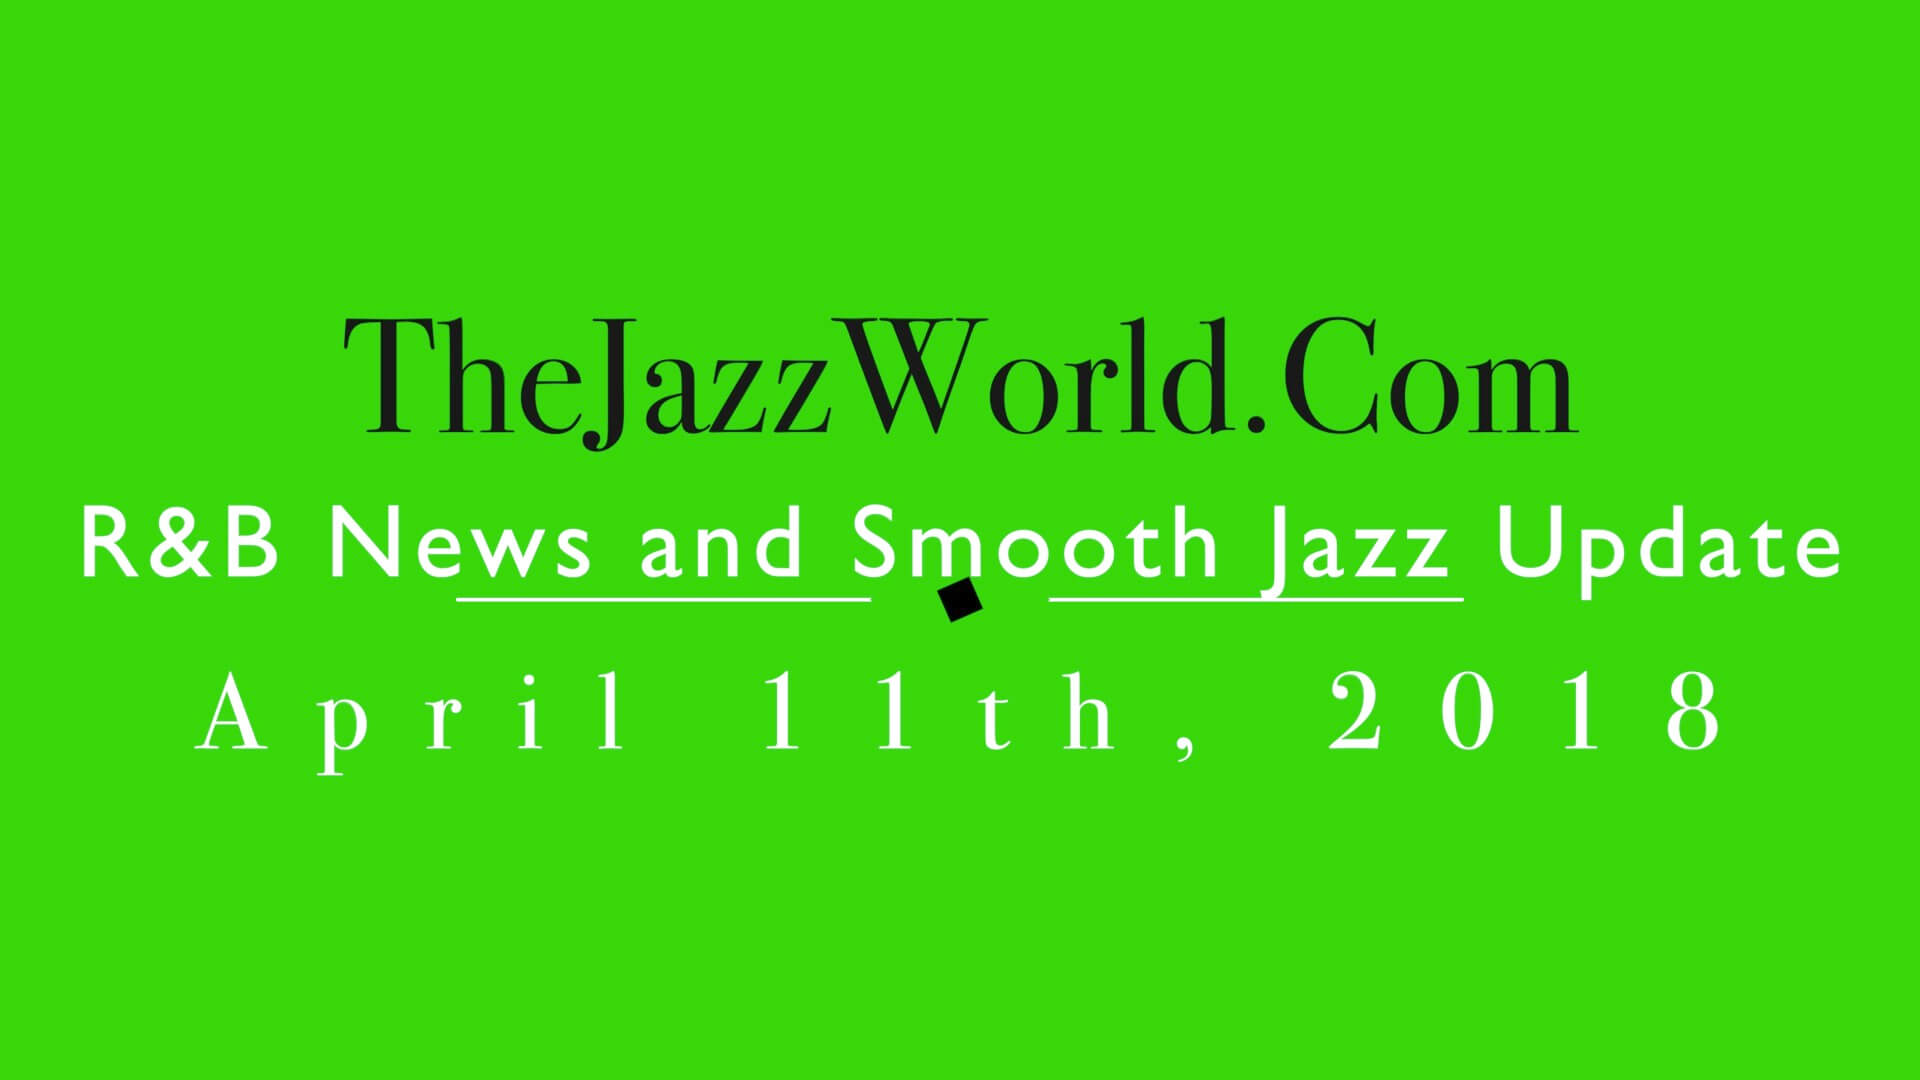 Latest R&B News and Smooth Jazz Update April 11th